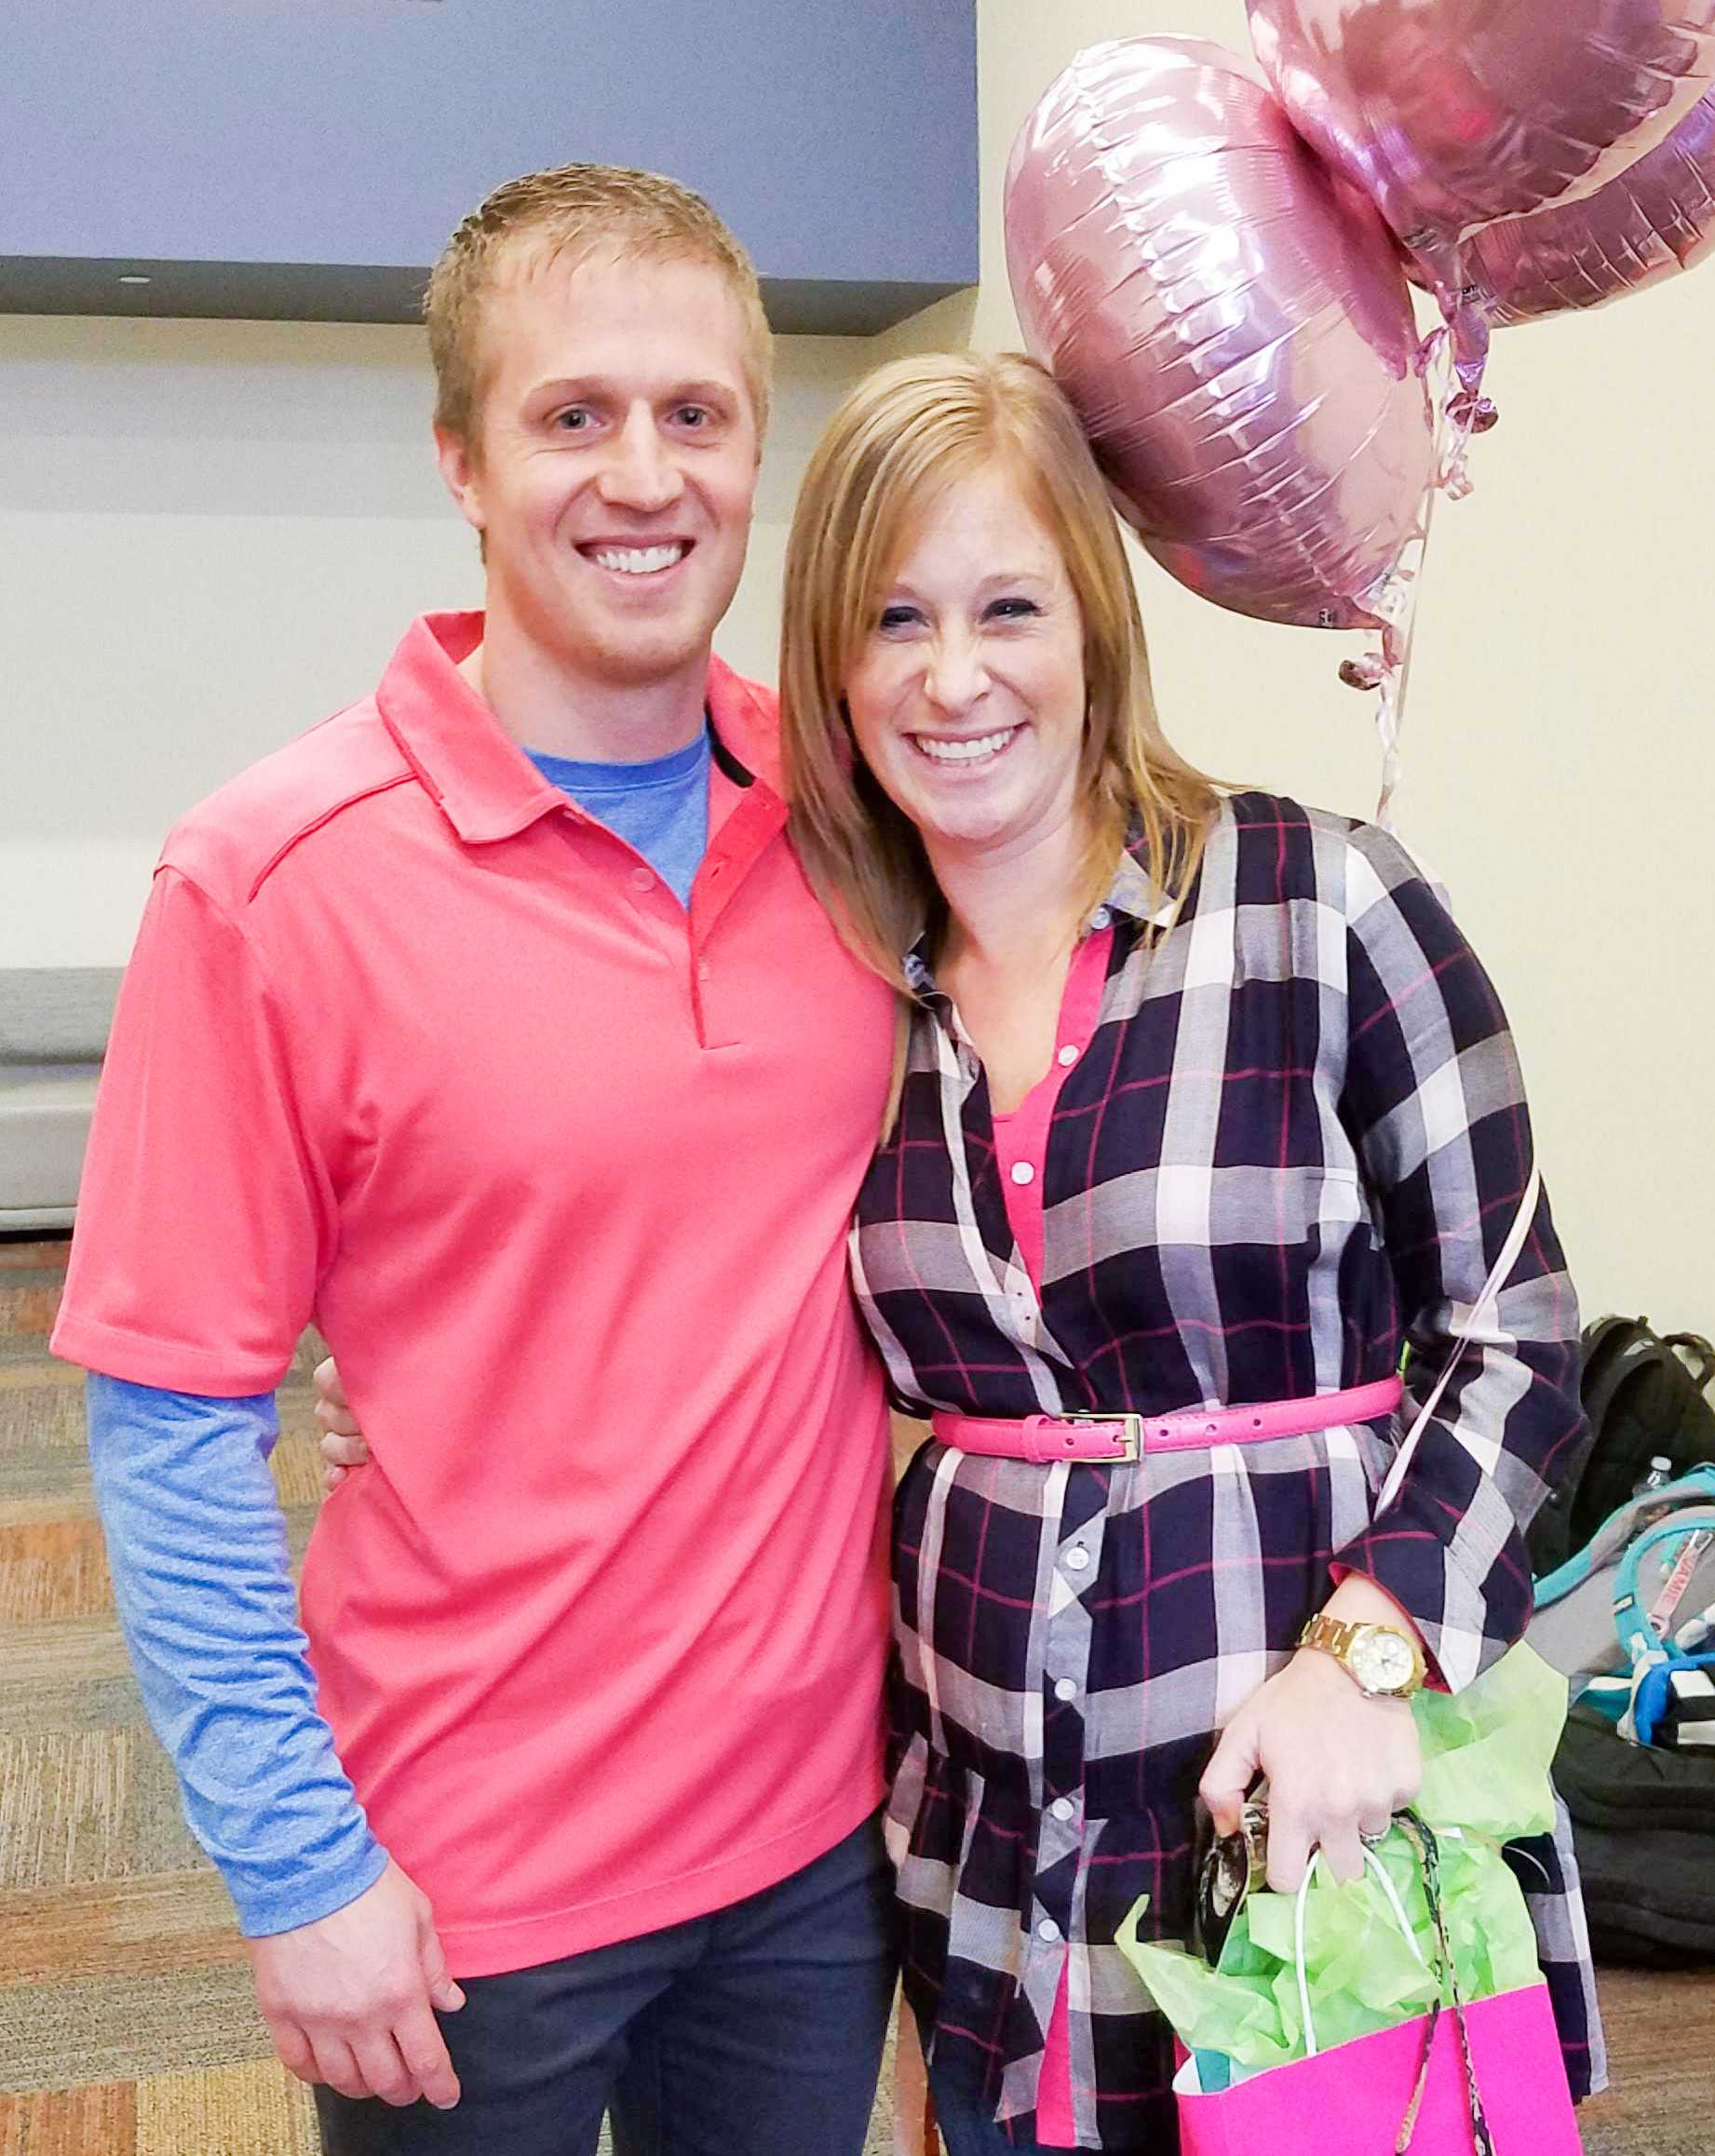 It's a girl for Seventh grade Bible teacher Eric Leininger and Upper School Math teacher Lauren Leininger. As part of the Sanctity of Life Chapel, the Prestonwood Pregnancy Center performed a live sonogram on Mrs. Leininger which was projected on the big screen to show students their unborn child and reveal the baby's gender.